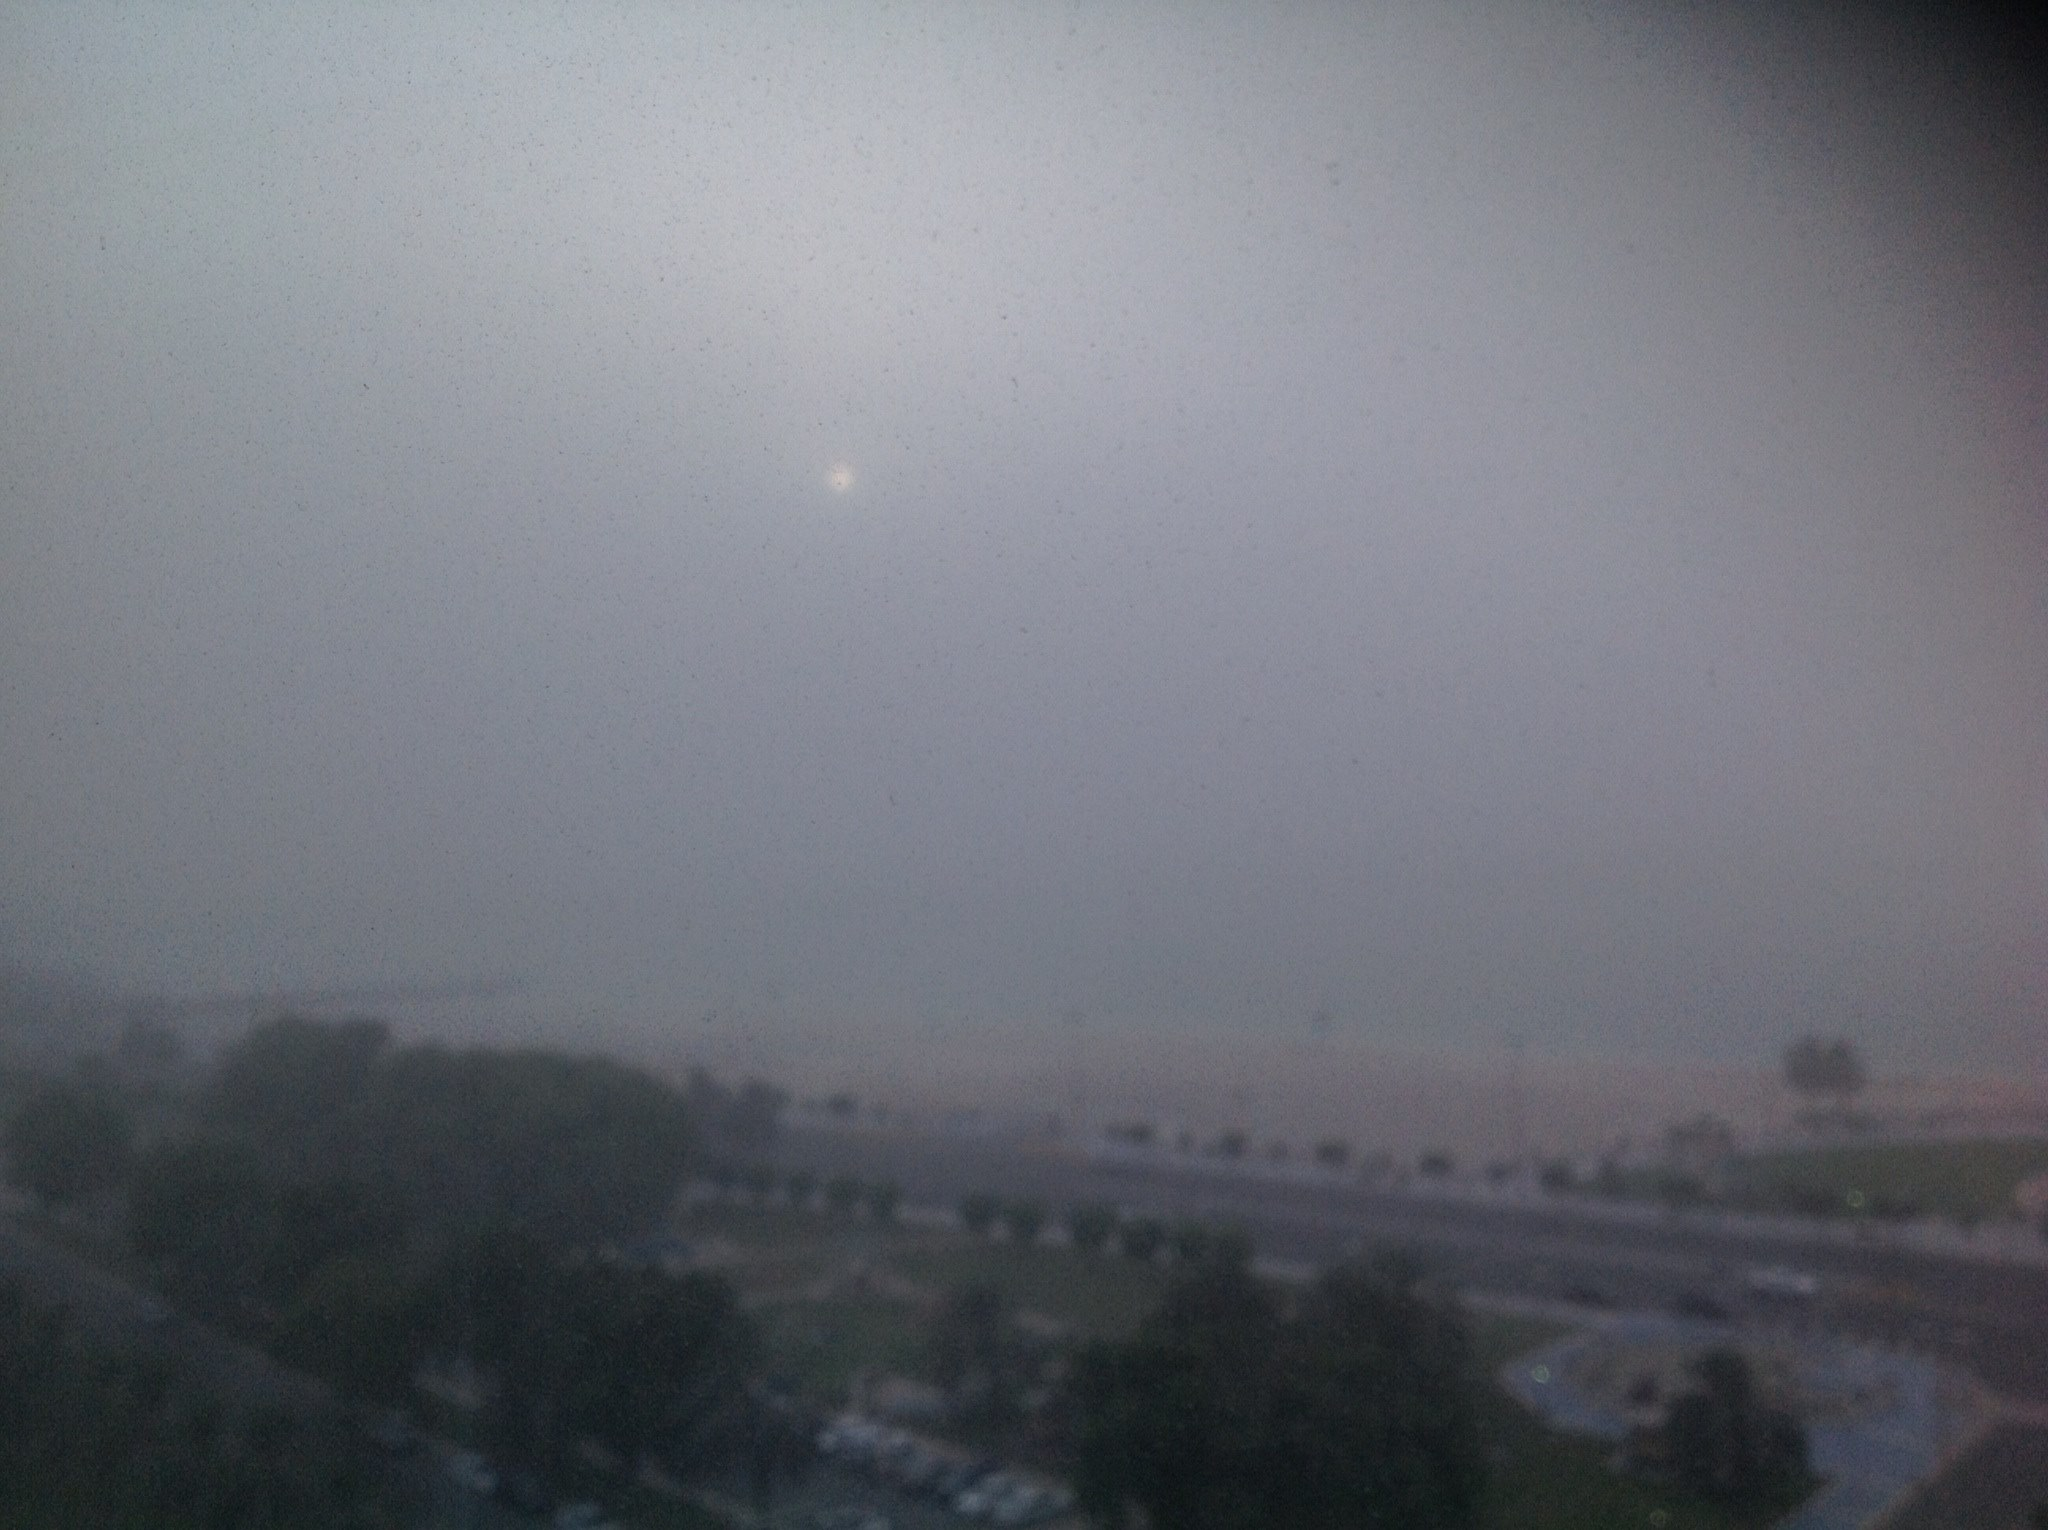 Sand Storm August 17, 2014